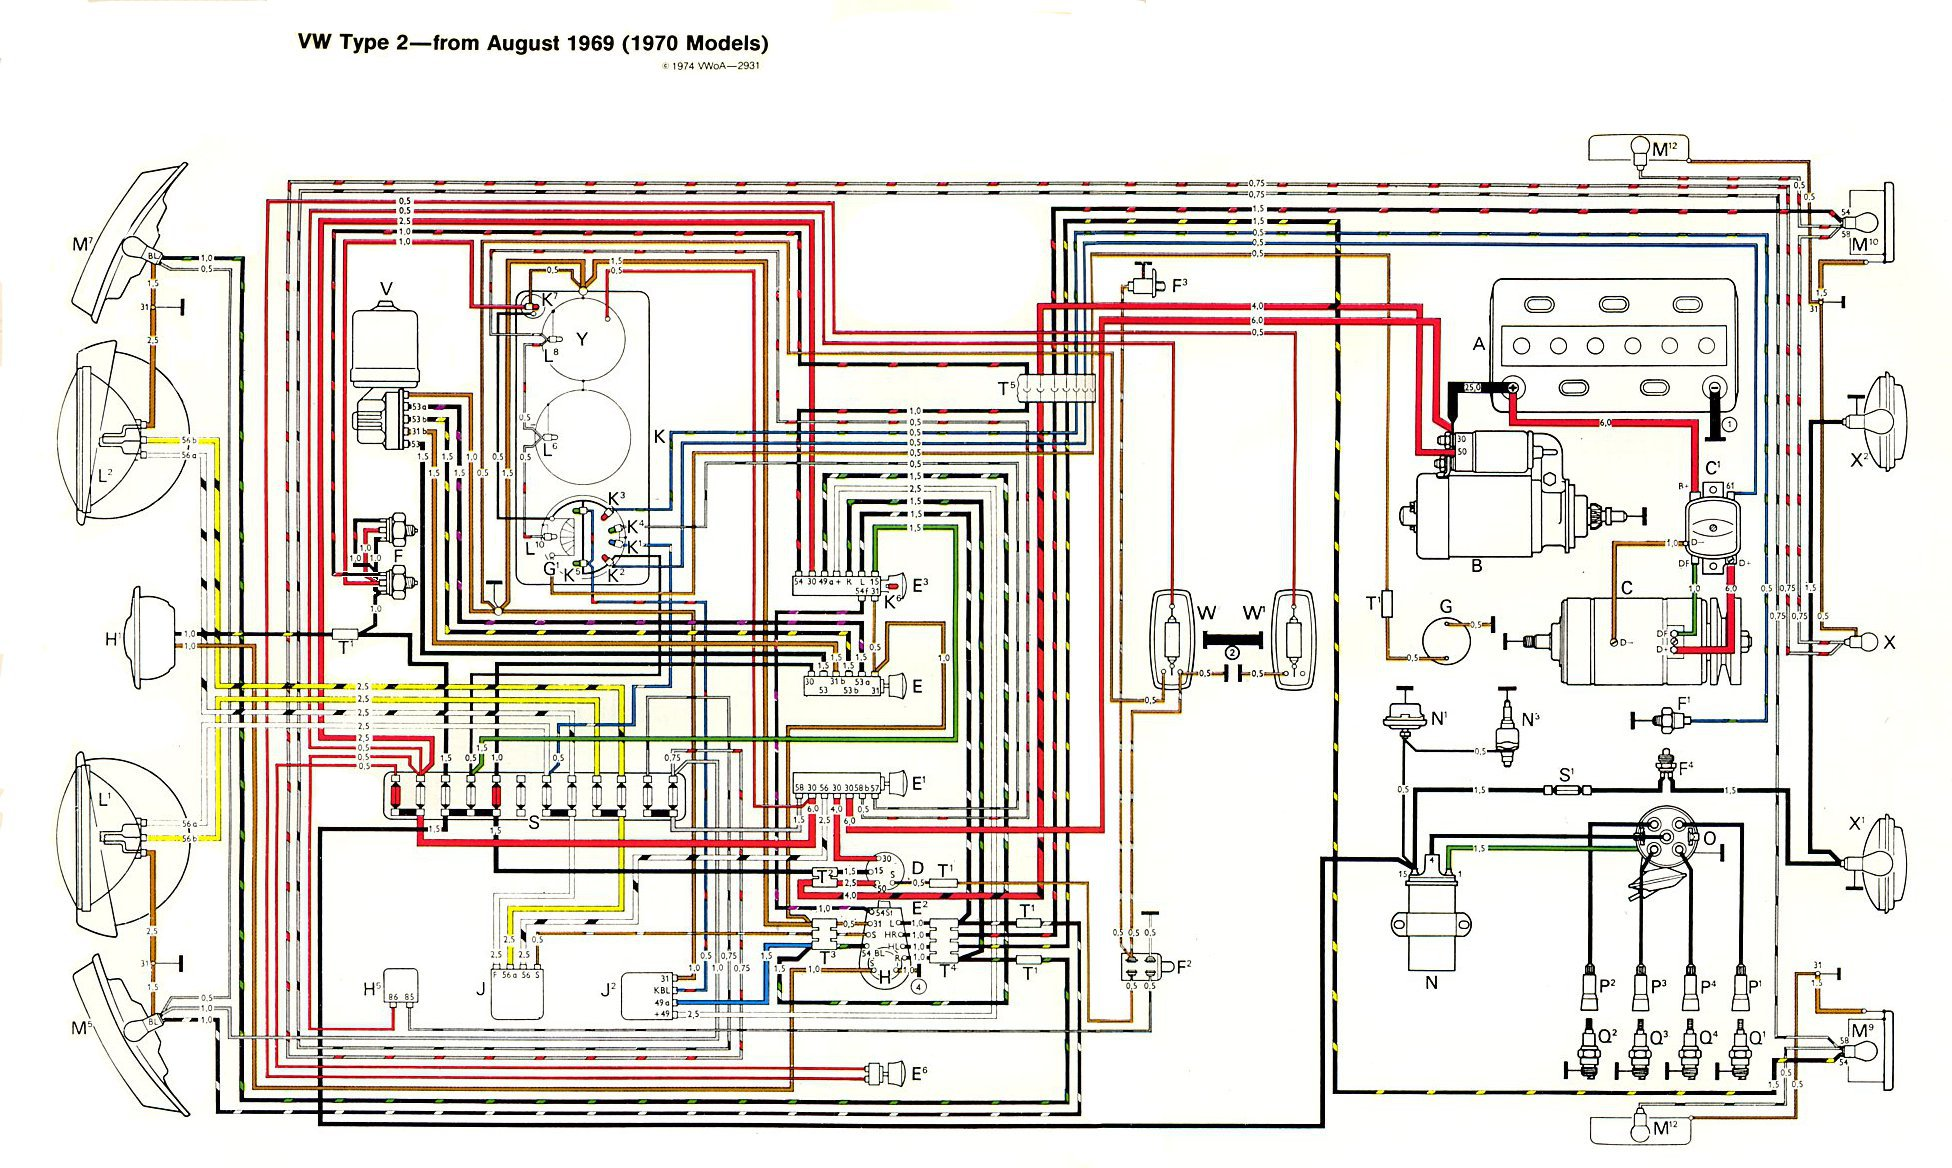 1966 Porsche Wiring Diagram Circuit Diagram Schematic Power Window Switch Wiring  Diagram 1966 Jeep Wiring Diagram